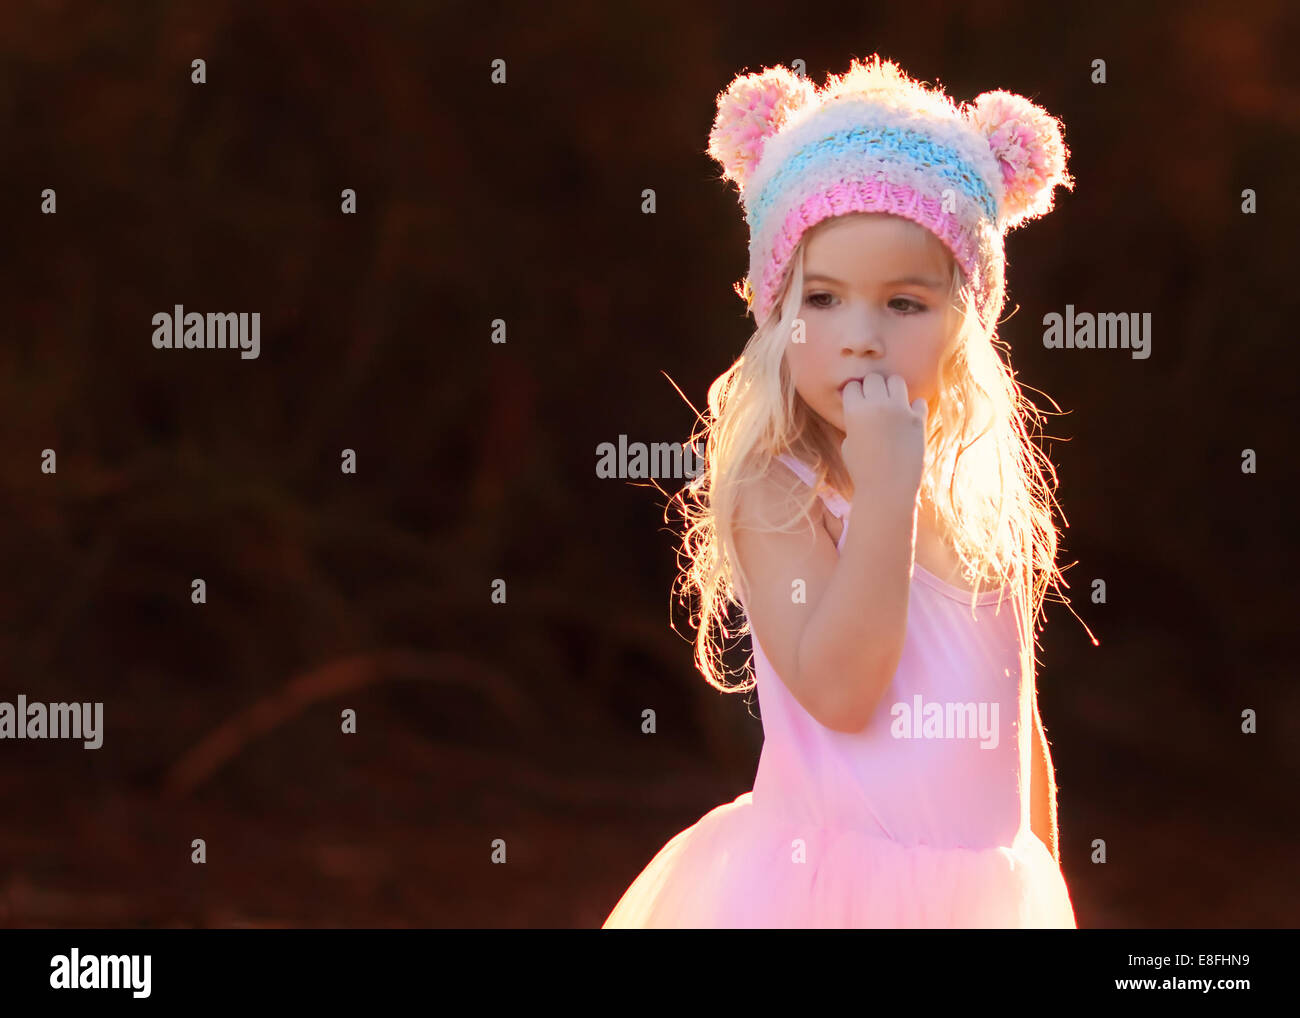 Little girl (4-5) wearing hat with bear ears - Stock Image